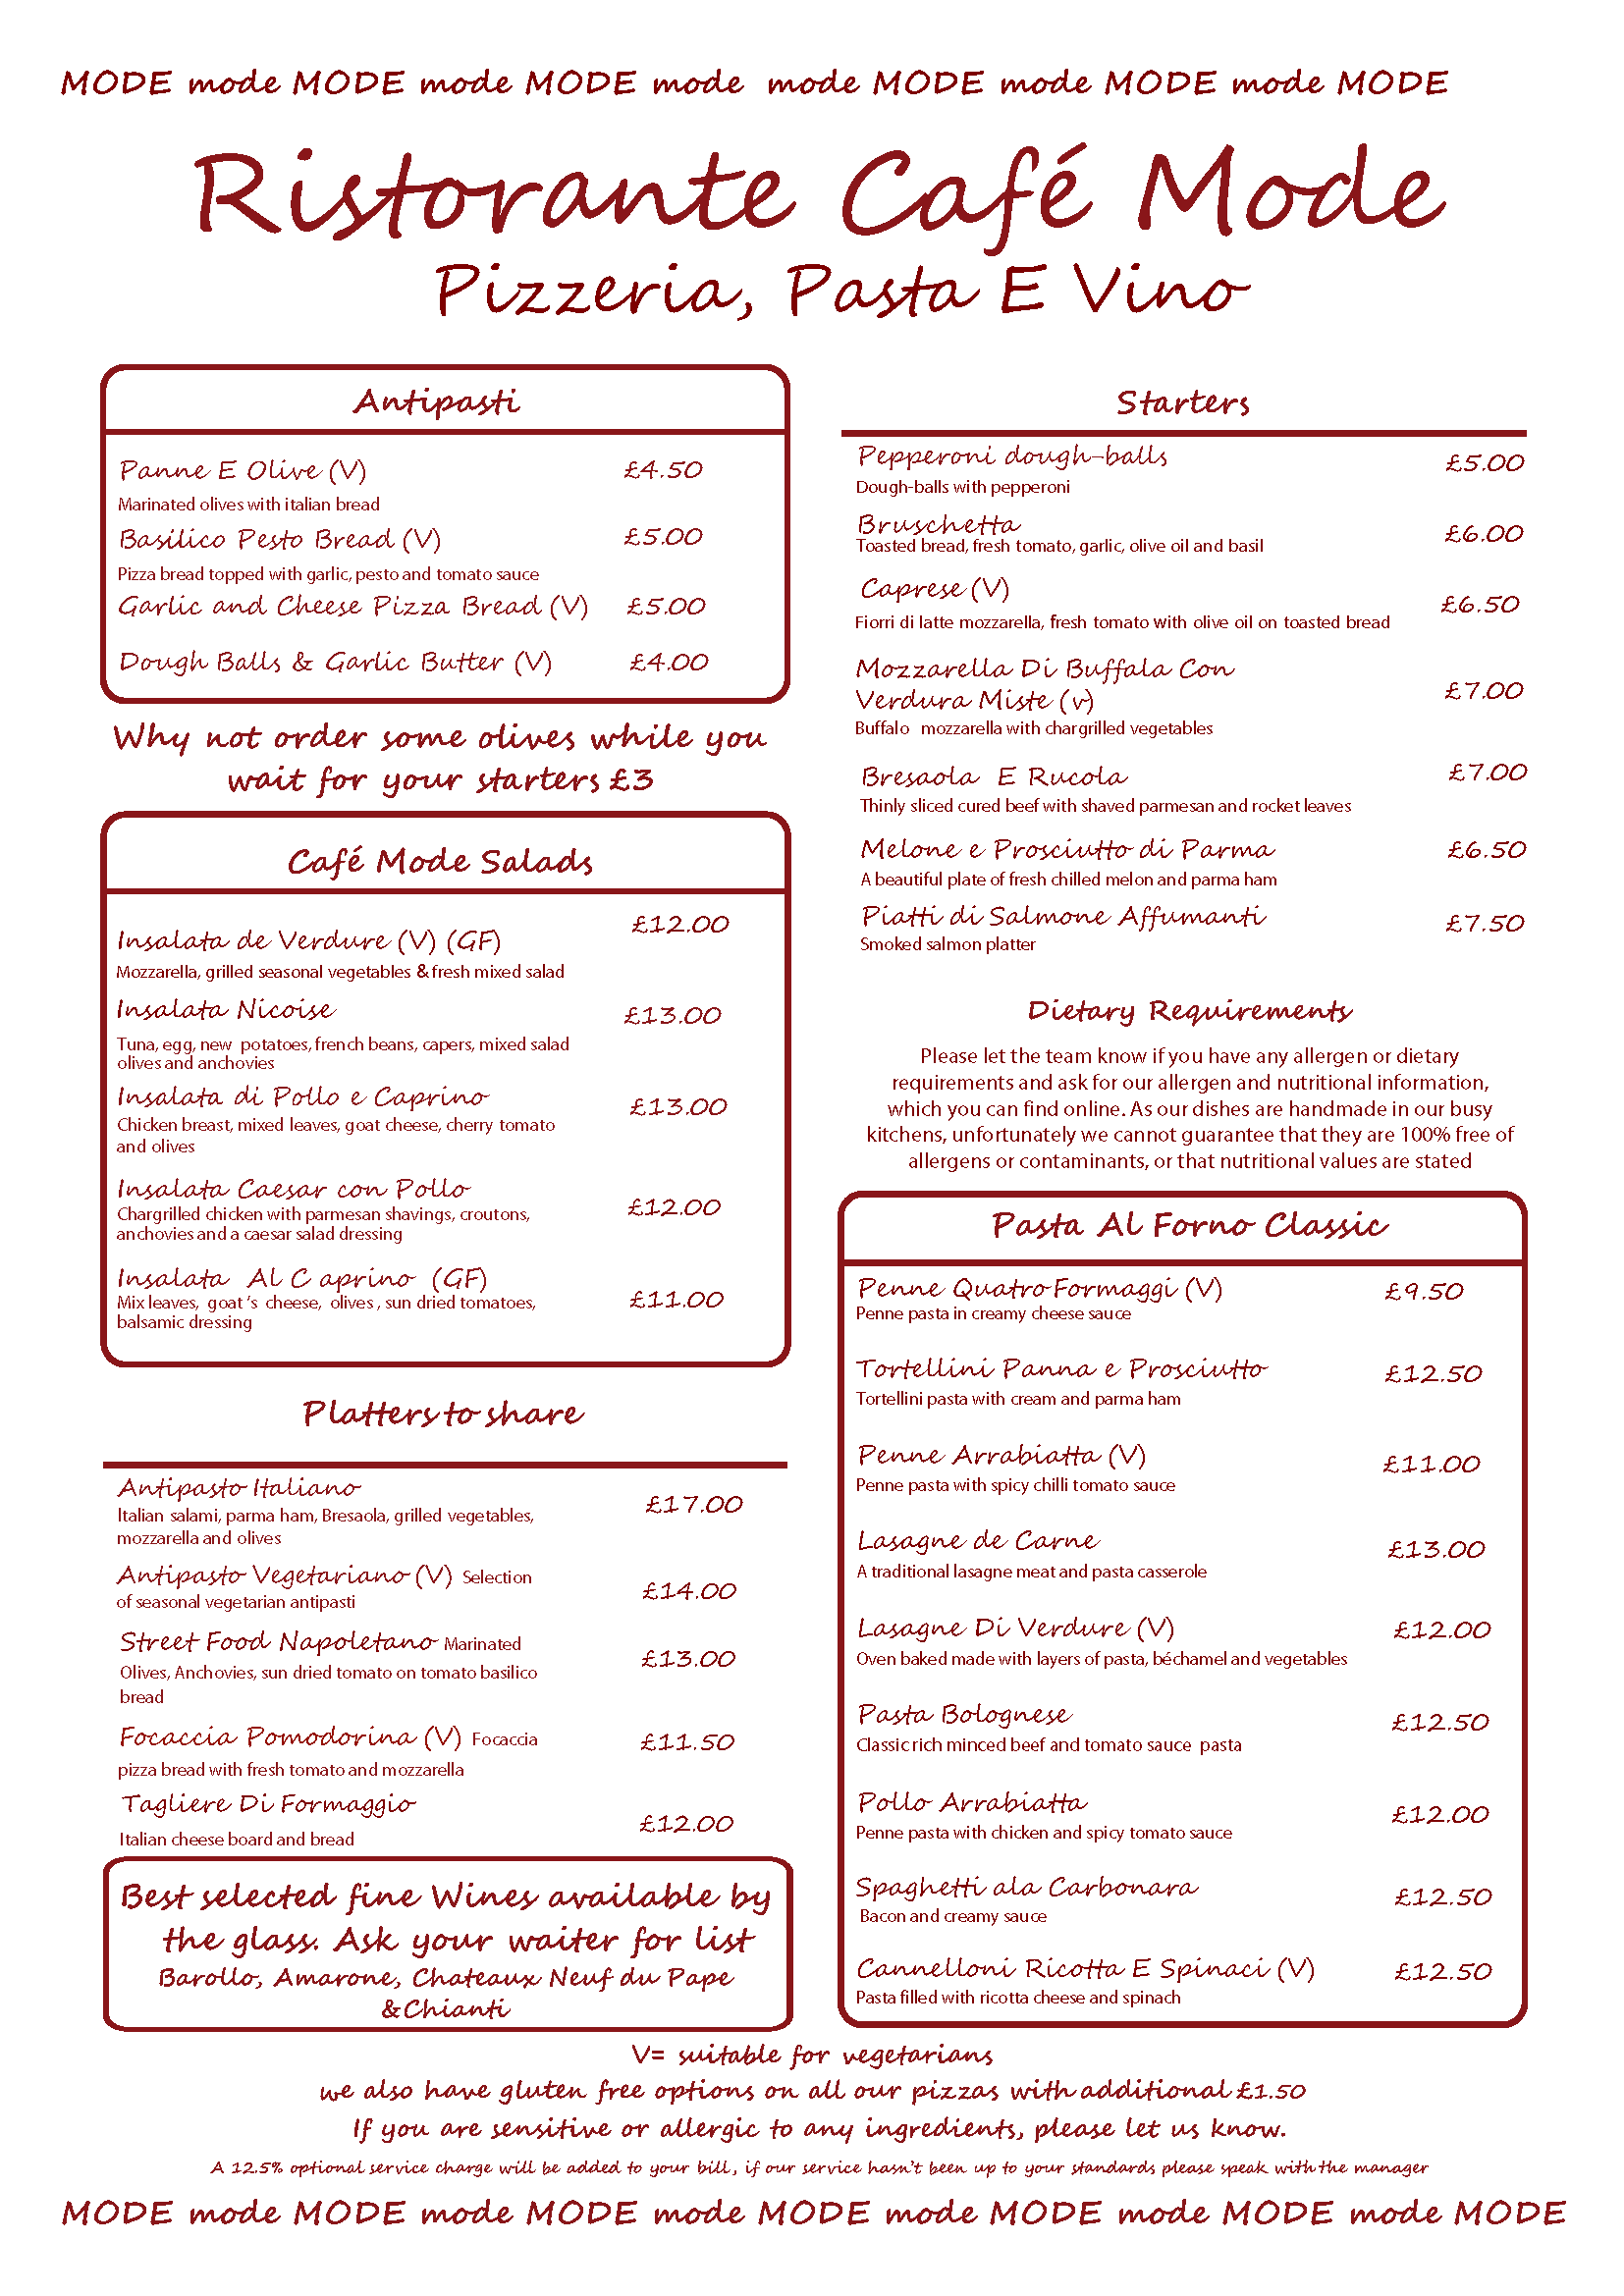 Download Cafe-Mode-Italian-Restaurant-Covent-Garden-Menu